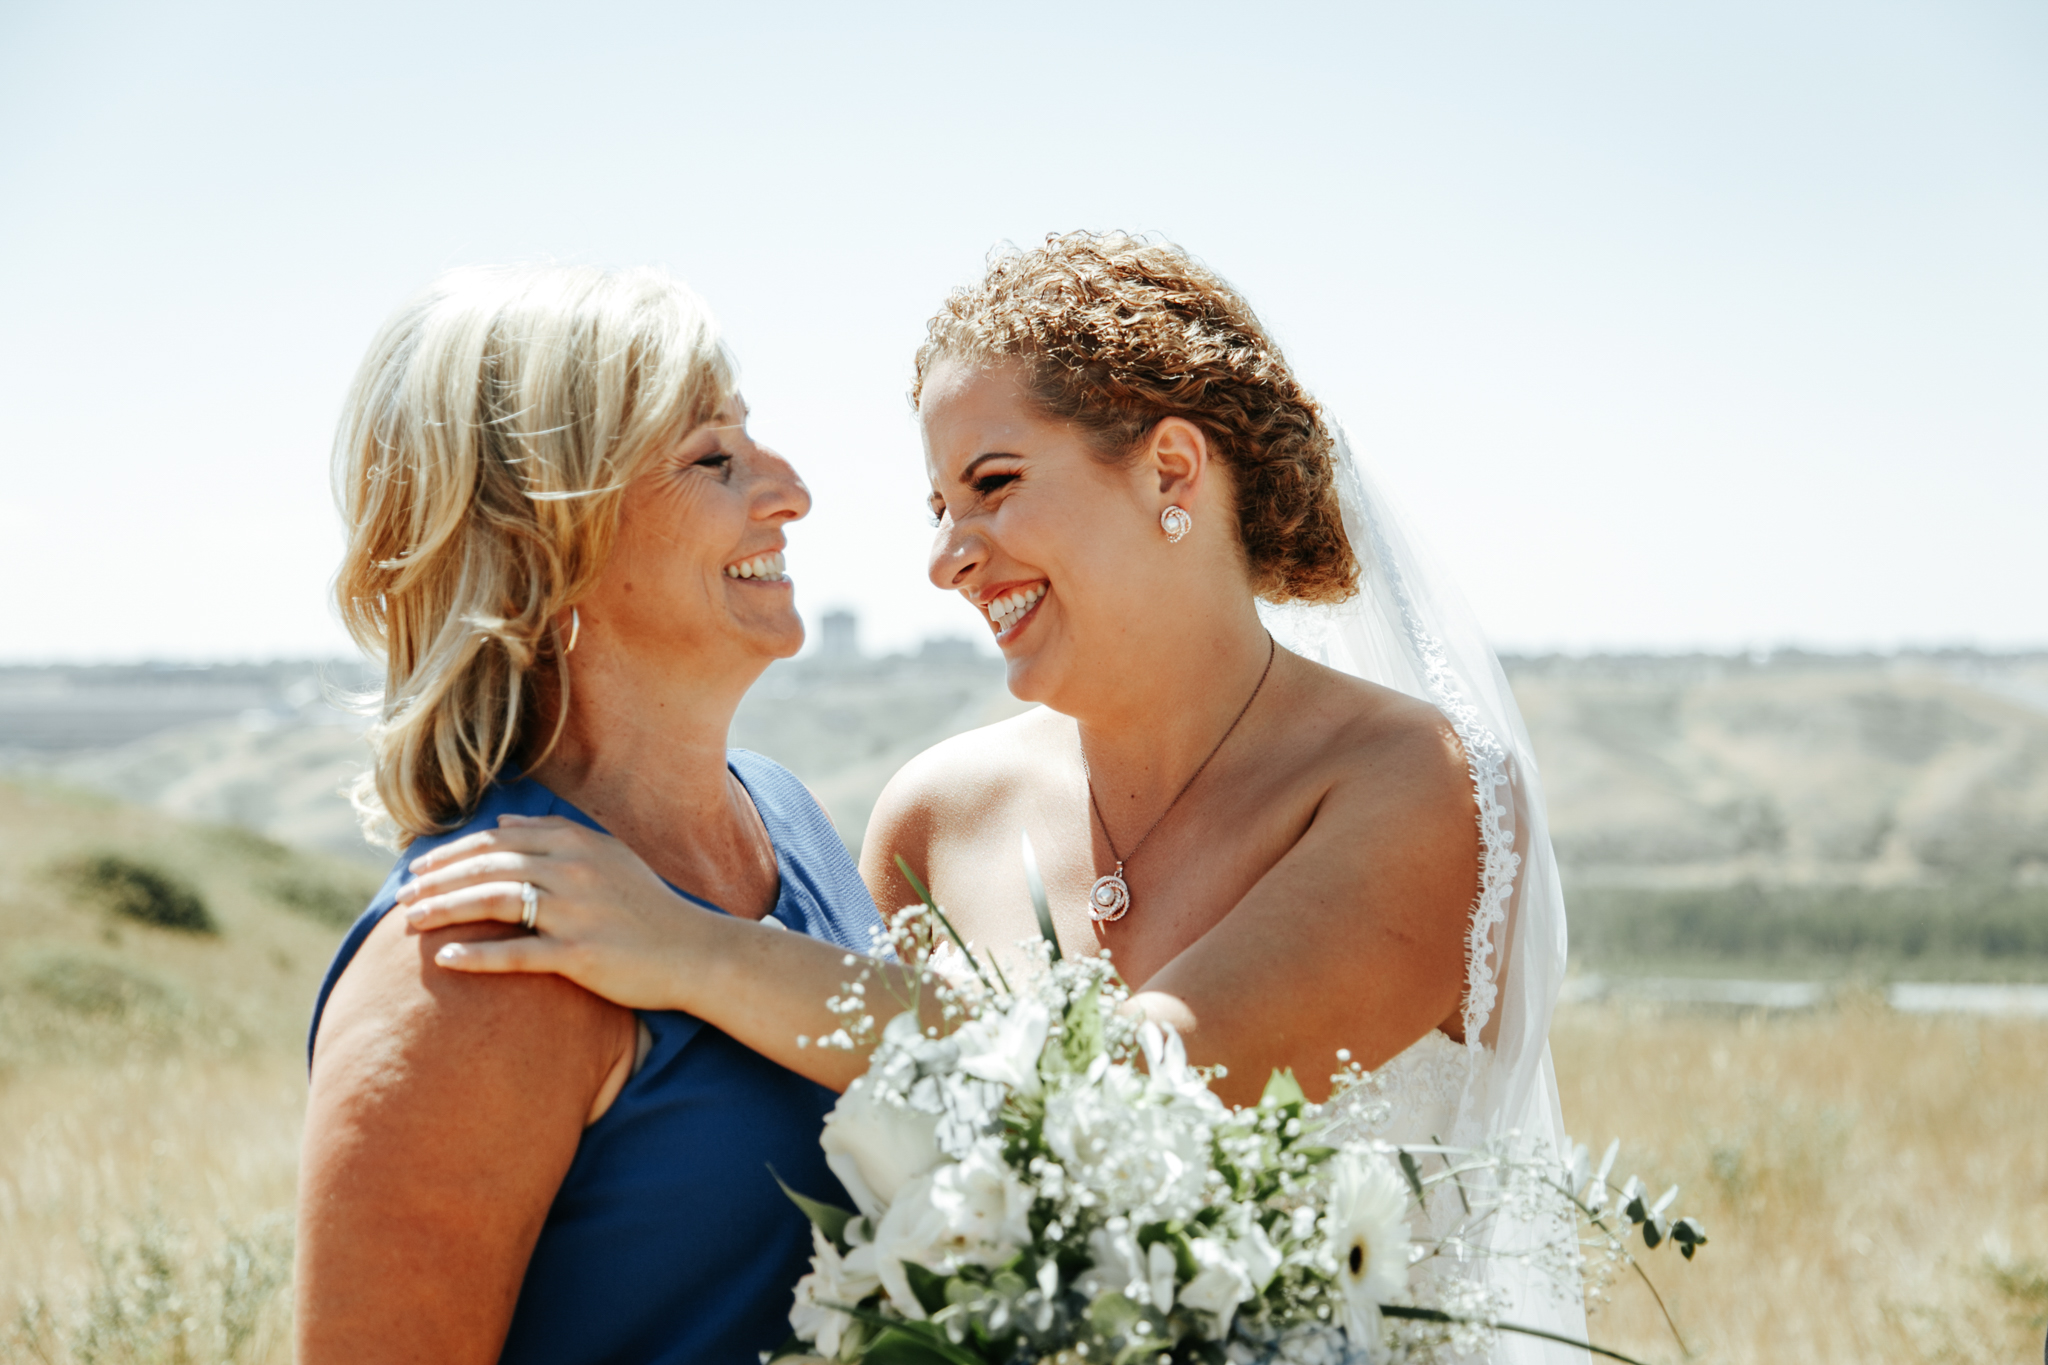 lethbridge-wedding-photographer-love-and-be-loved-photography-trent-danielle-galt-reception-picture-image-photo-86.jpg